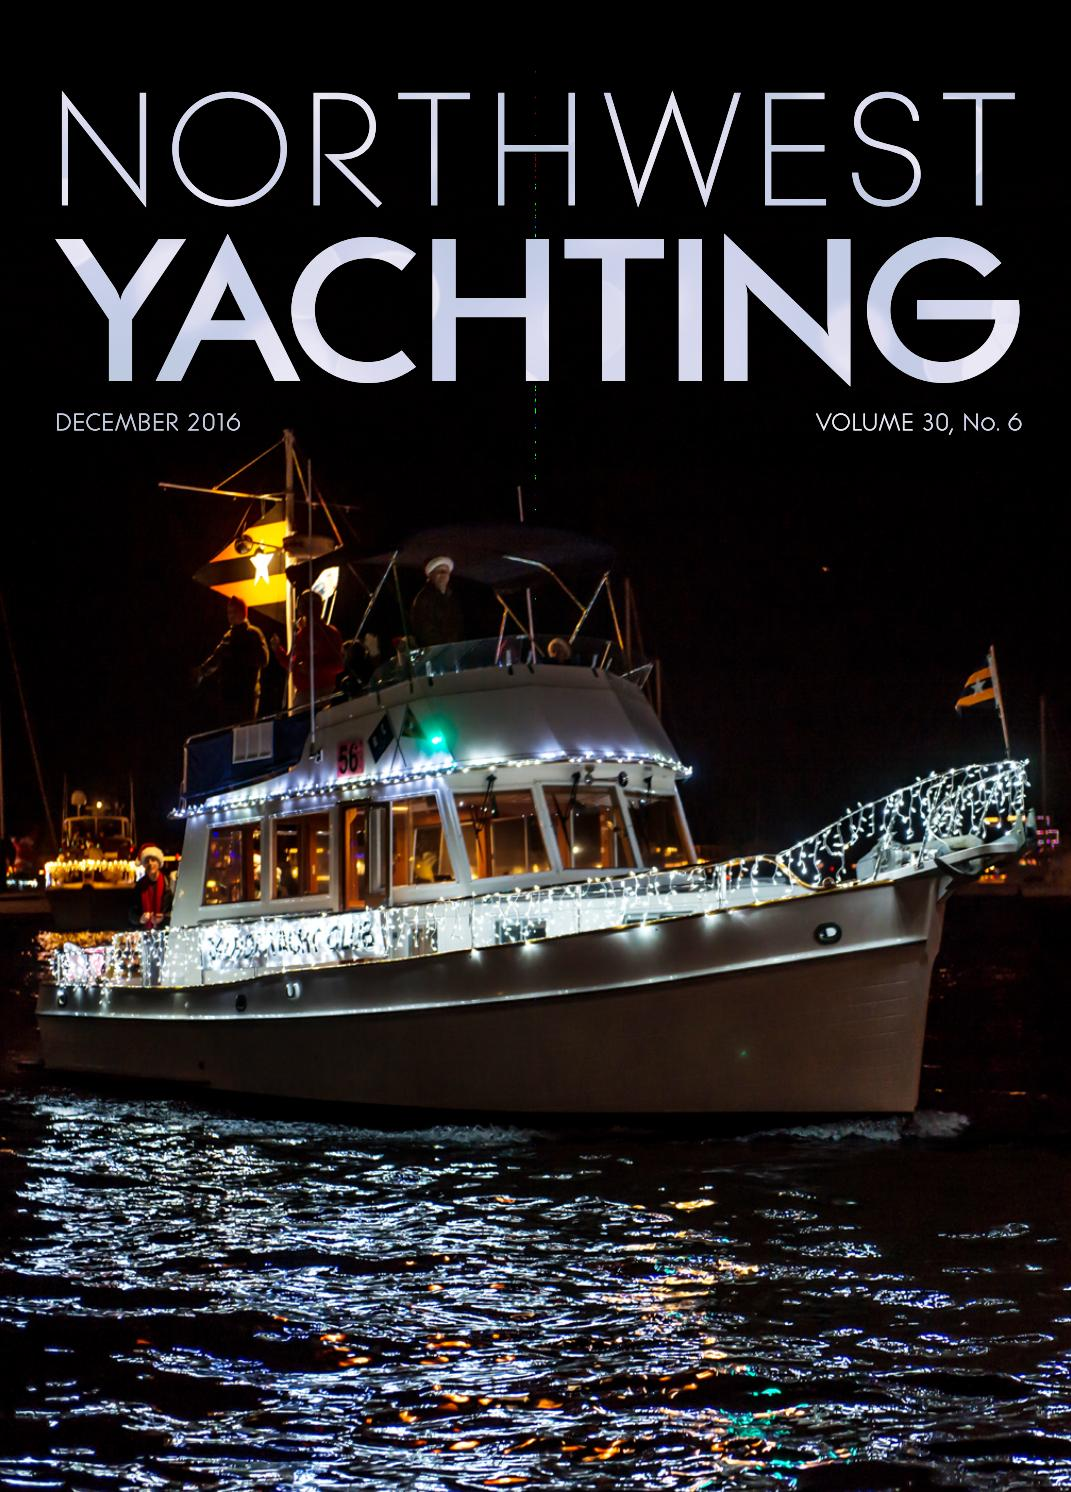 Northwest Yachting December 2016 by Northwest Yachting - issuu